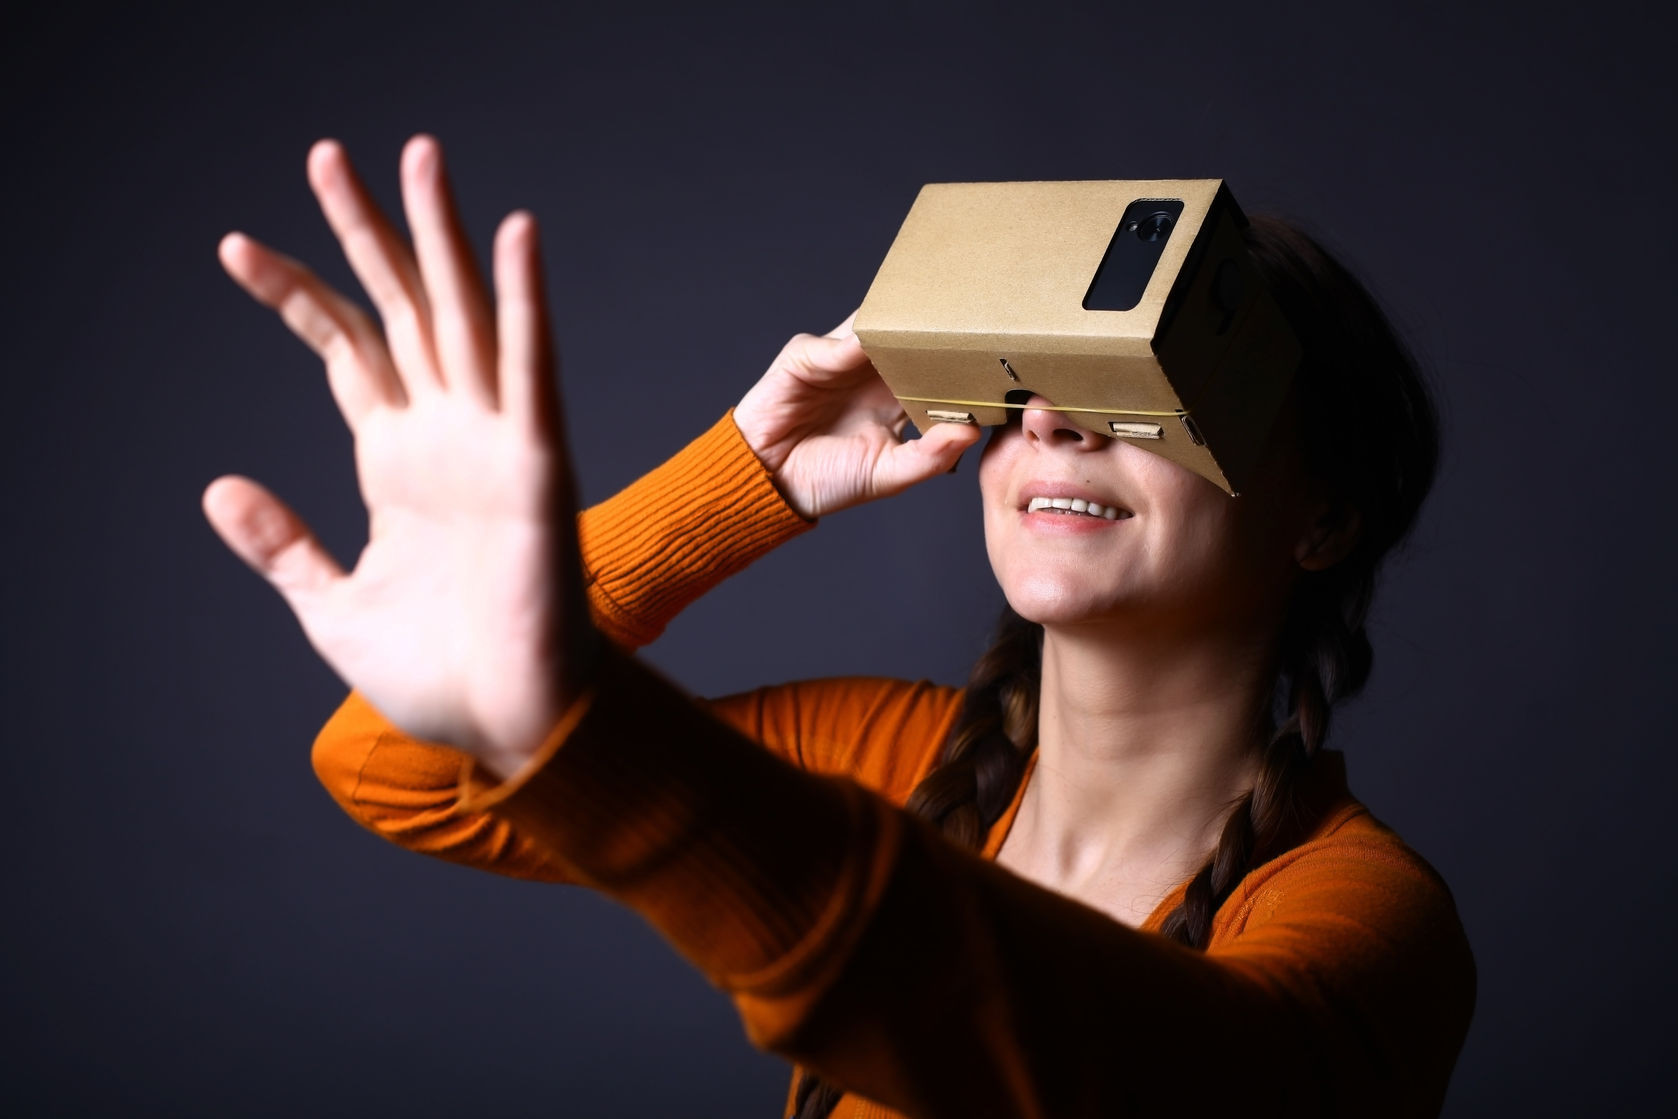 NY Times to send out 300,000 Cardboard VR viewers in second giveaway